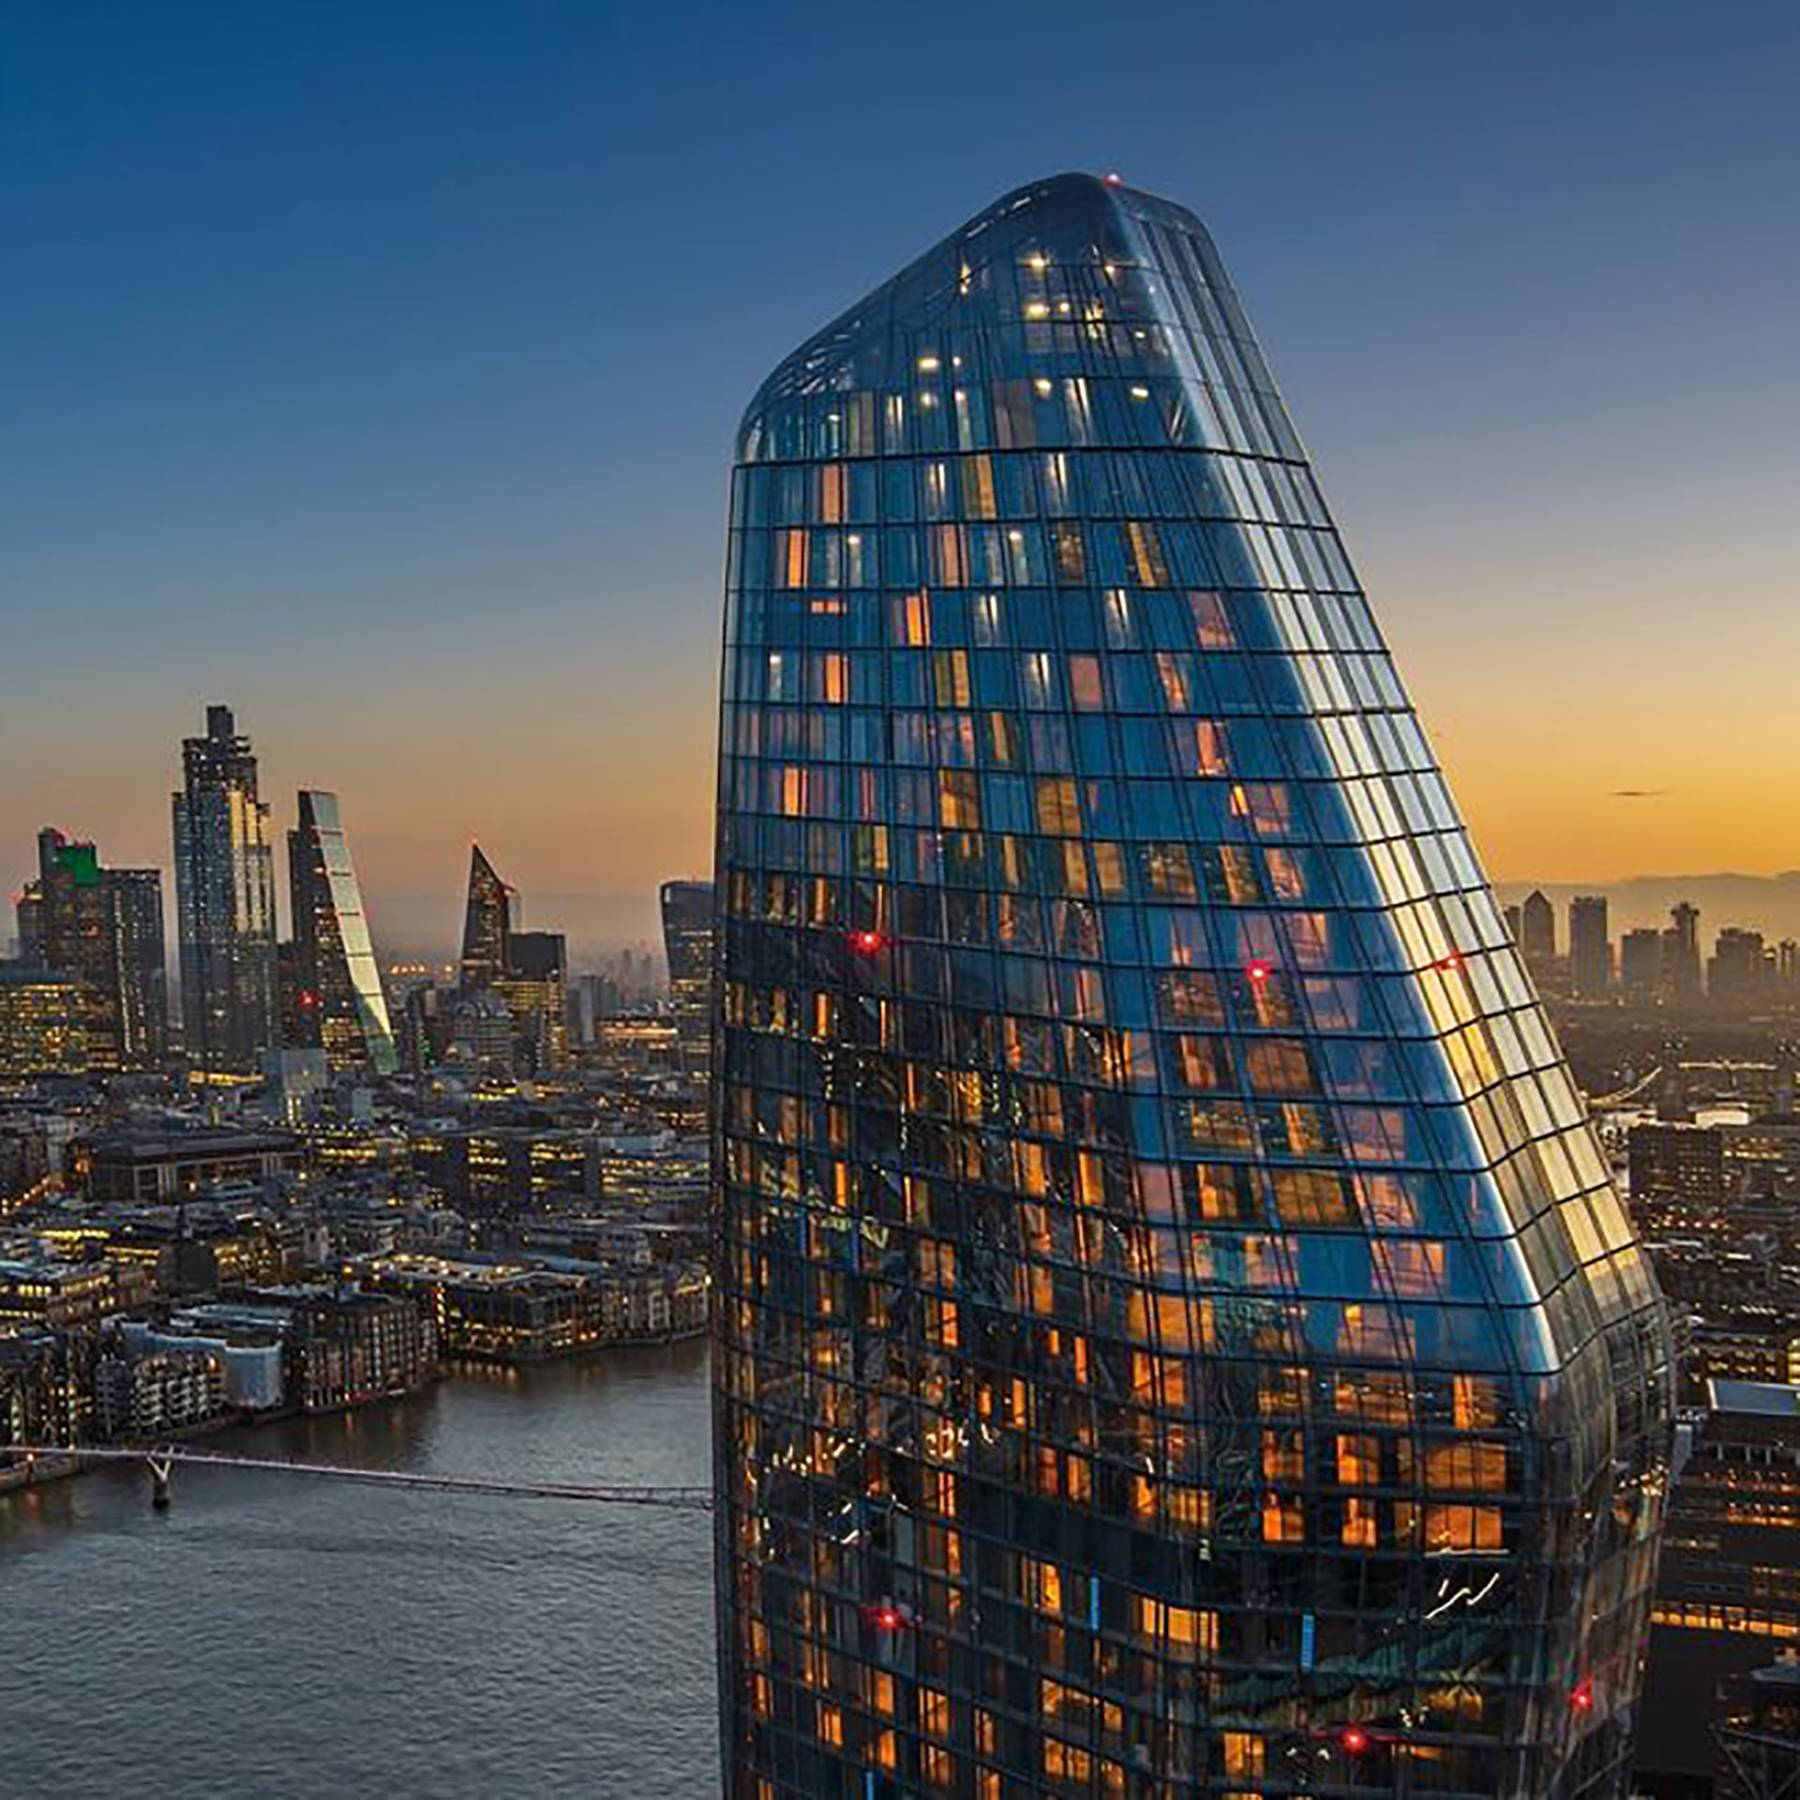 Make way for the new Millionaires' Row in less likely Blackfriars